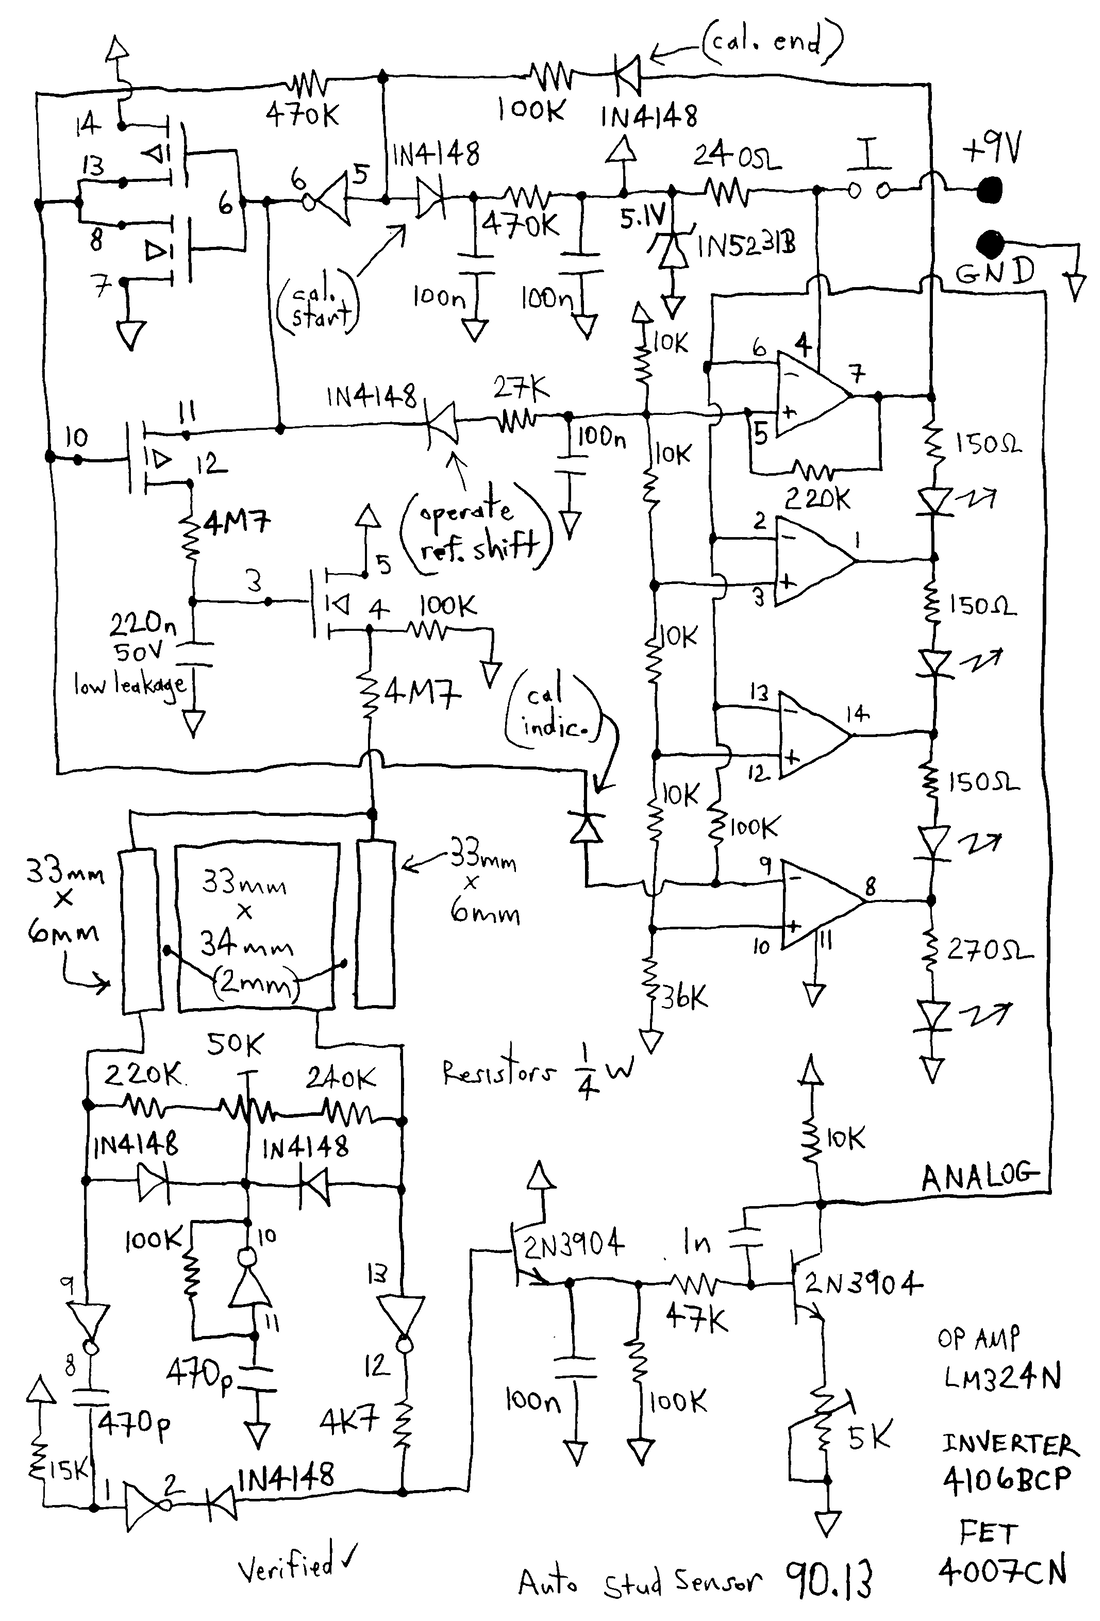 Electric Circuit Drawing At Free For Personal Use Schematic Diagram 1100x1621 Lpg Sensor Alarm Sgprojects Co In Wiring